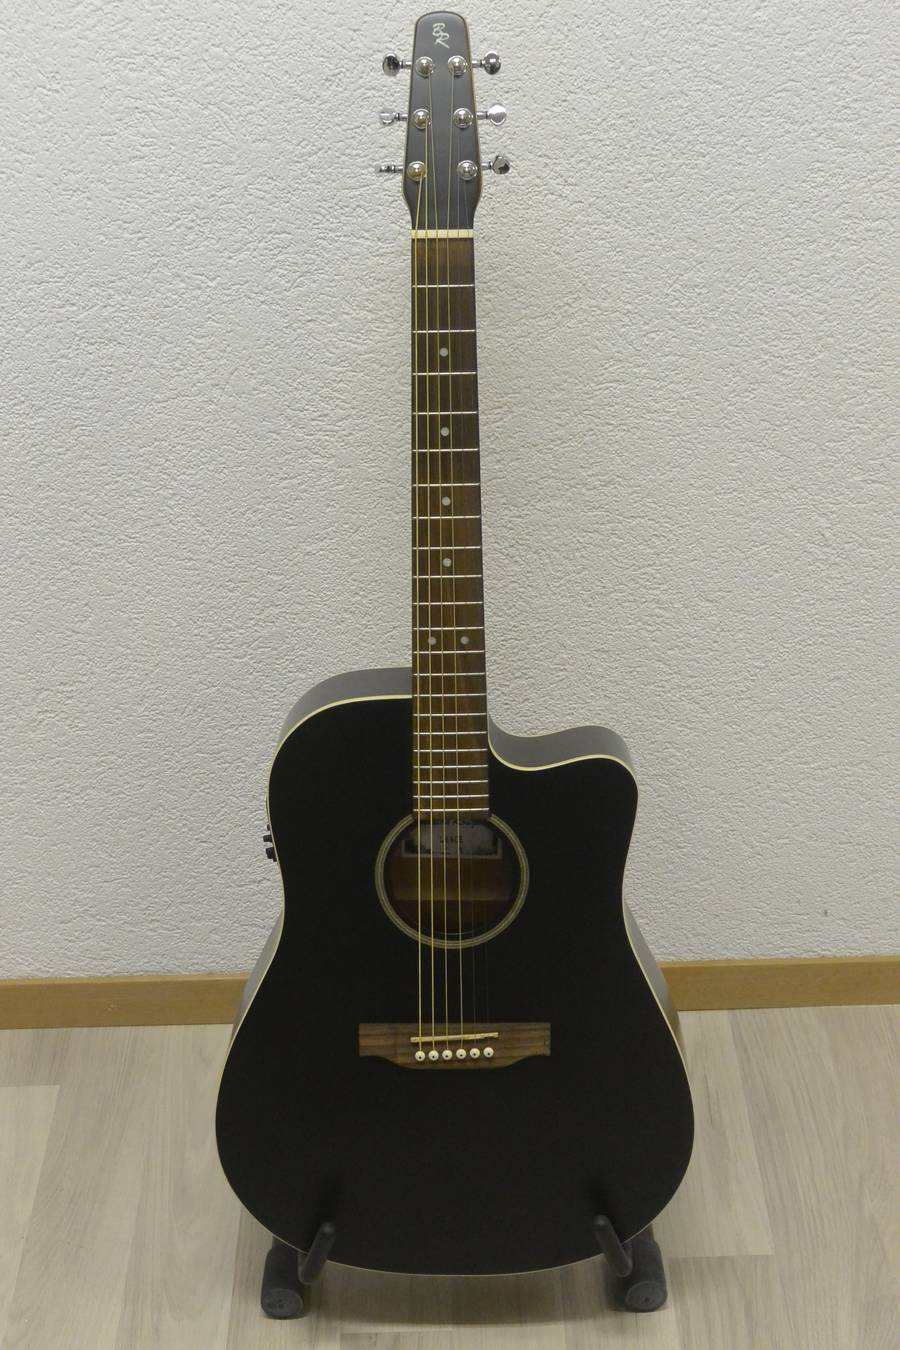 guitare acoustique baton rouge L6BCE frs 555.00